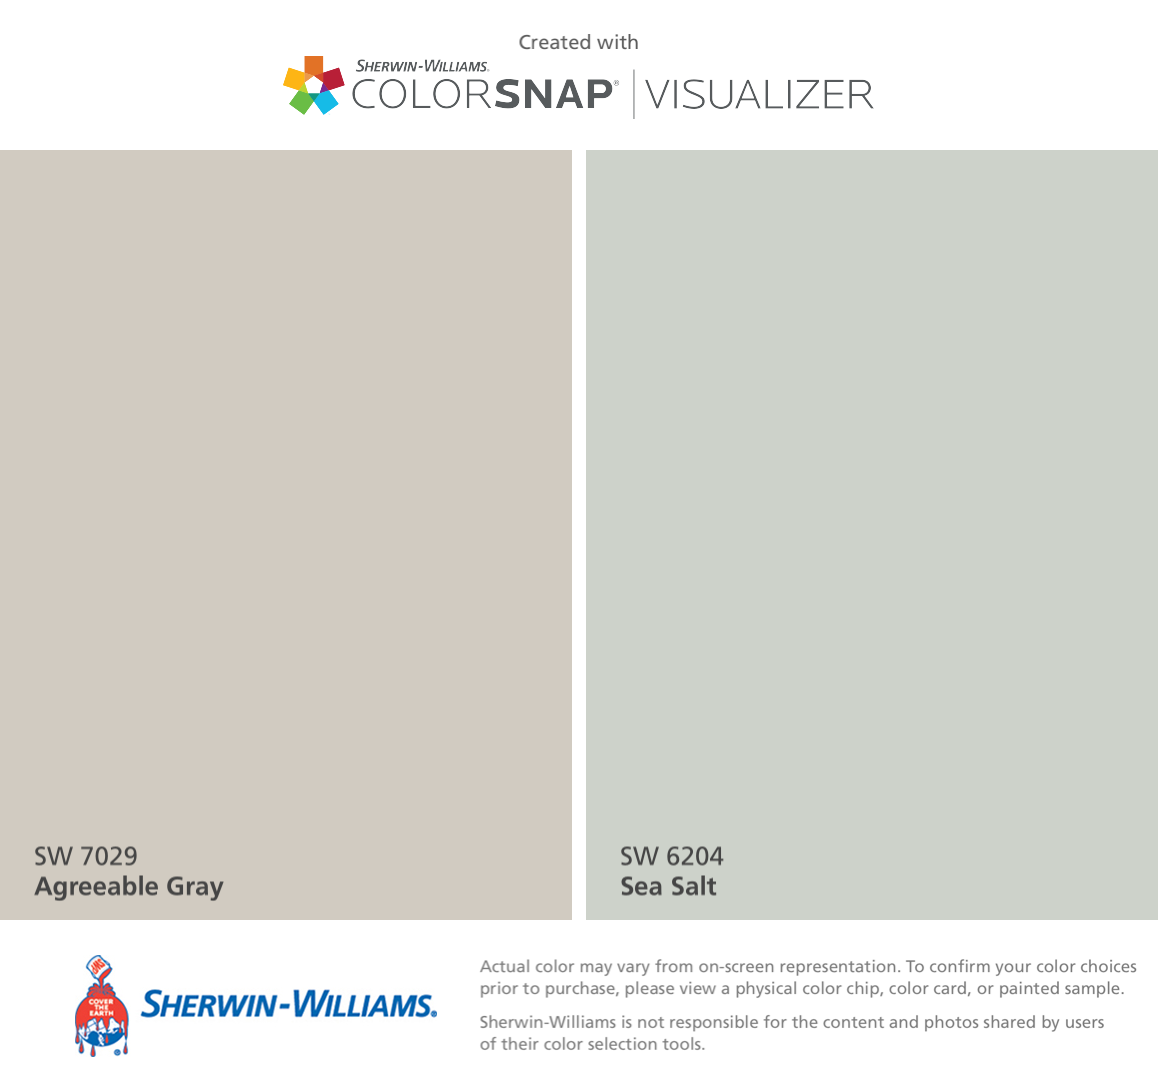 I found these colors with ColorSnap® Visualizer for iPhone by Sherwin-Williams: Agreeable Gray (SW 7029), Sea Salt (SW 6204). #sherwinwilliamsagreeablegray I found these colors with ColorSnap® Visualizer for iPhone by Sherwin-Williams: Agreeable Gray (SW 7029), Sea Salt (SW 6204). #sherwinwilliamsagreeablegray I found these colors with ColorSnap® Visualizer for iPhone by Sherwin-Williams: Agreeable Gray (SW 7029), Sea Salt (SW 6204). #sherwinwilliamsagreeablegray I found these colors with Col #sherwinwilliamsagreeablegray